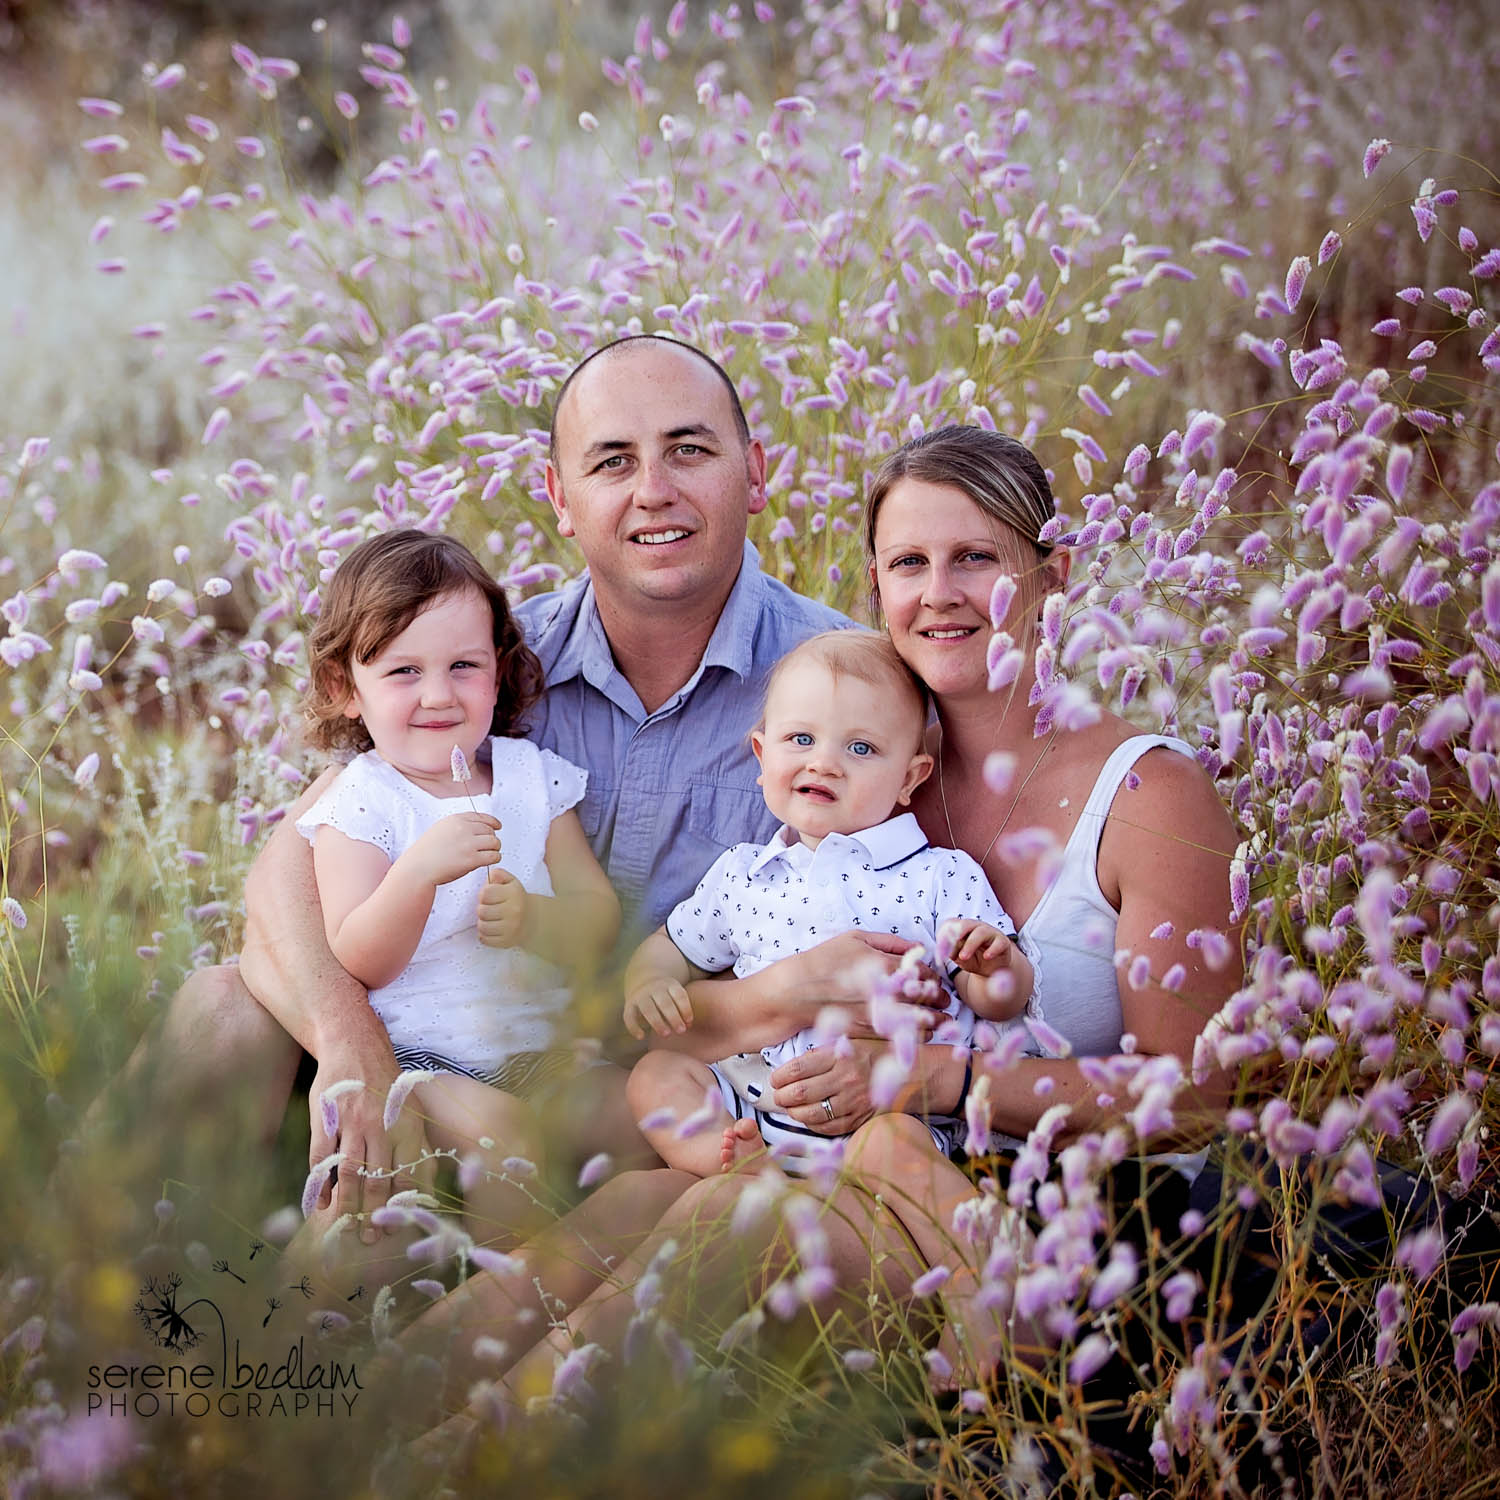 Serene Bedlam Newman Family Photography (6 of 17)